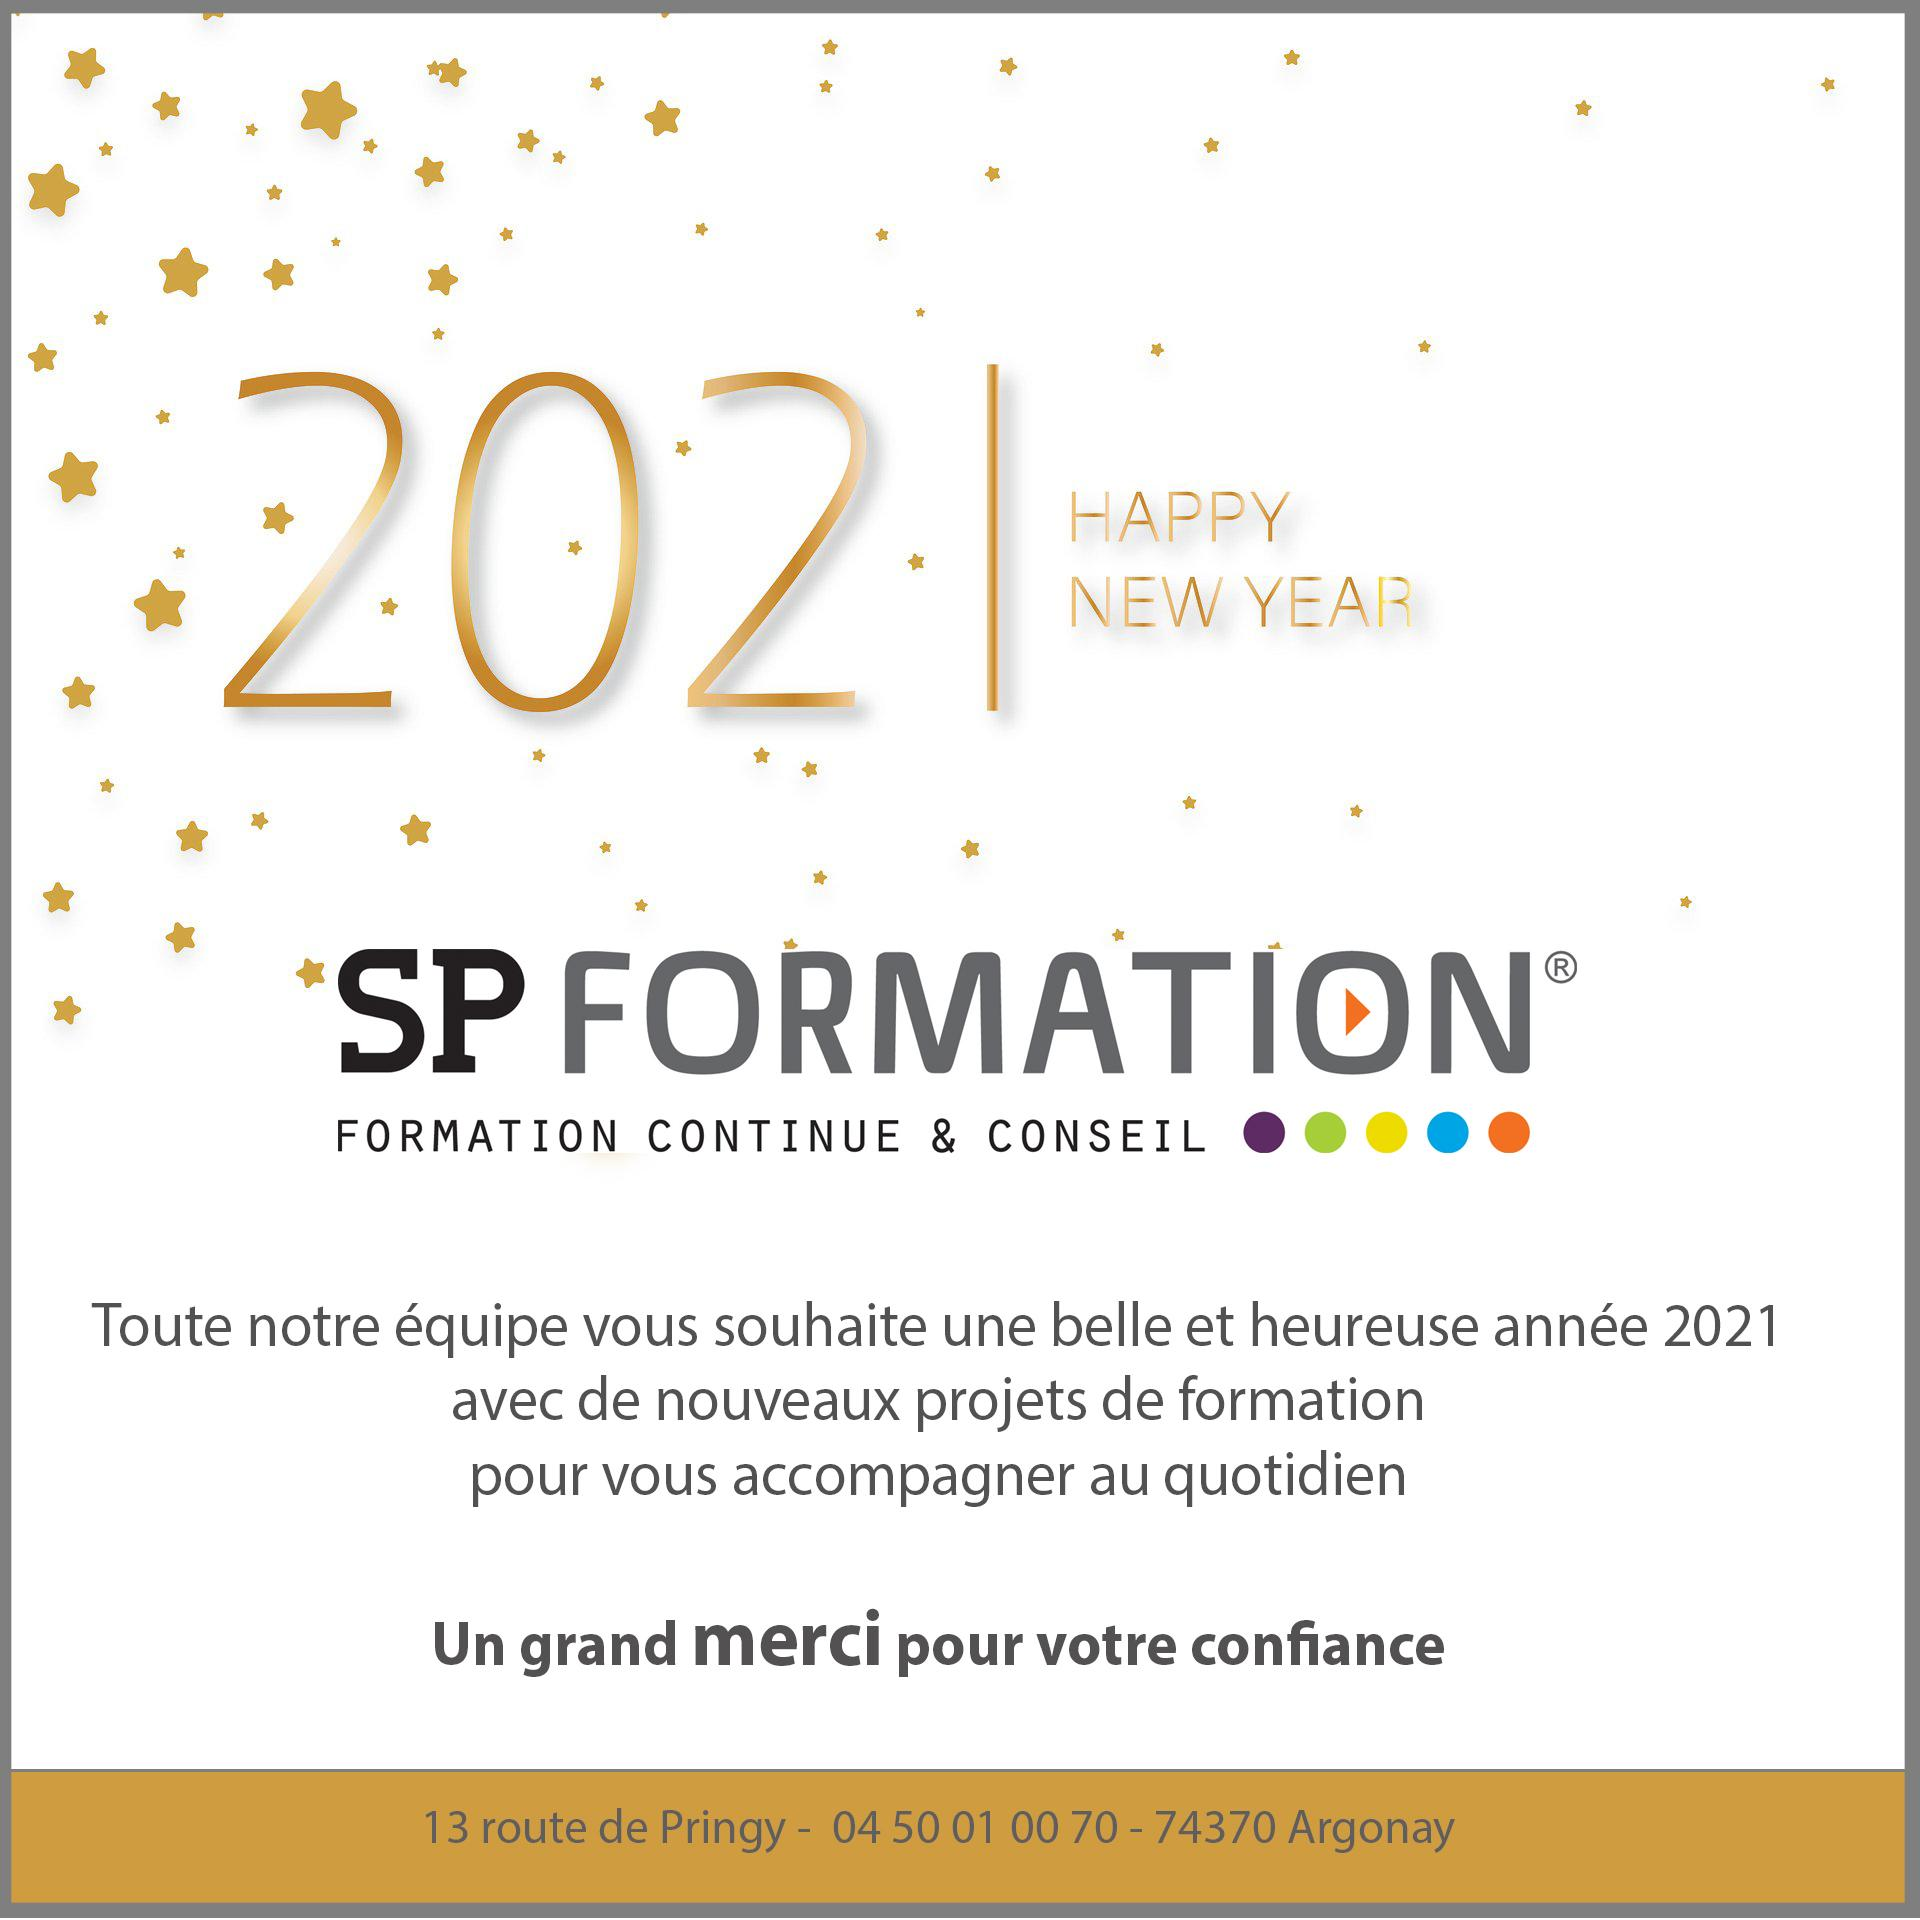 New year 2021 spformation